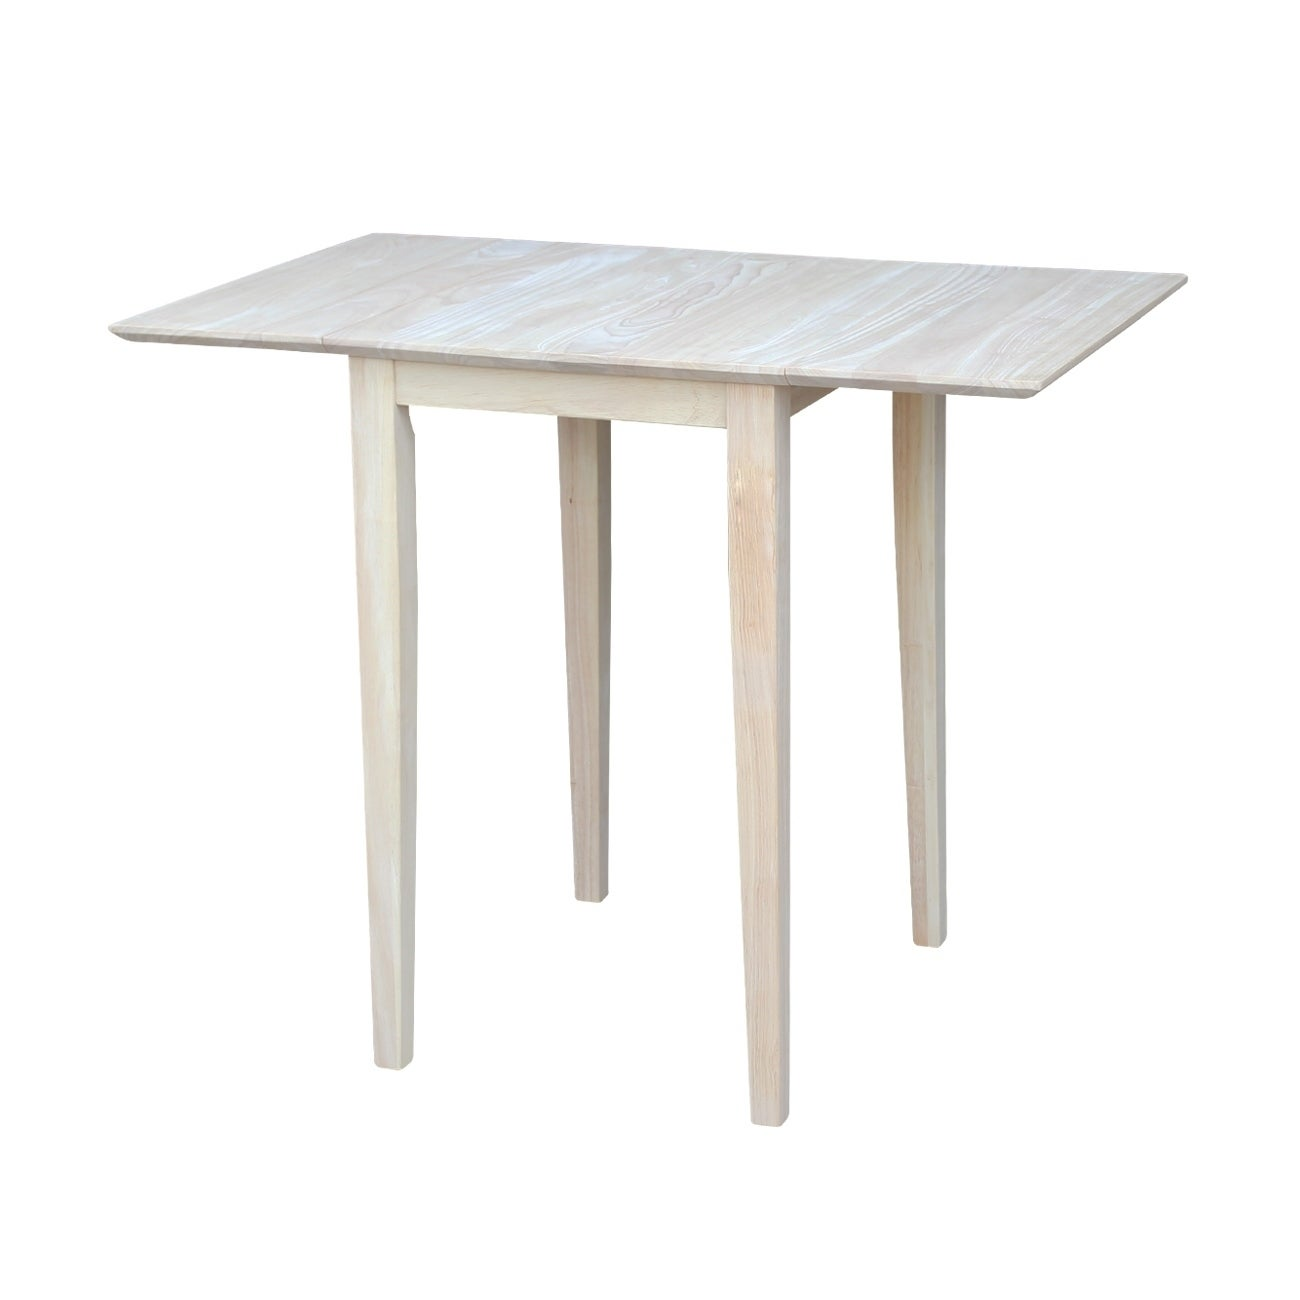 International Concepts Small Unfinished Rectangular Drop Leaf Shaker Style Dining Table On Free Shipping Today 9346141